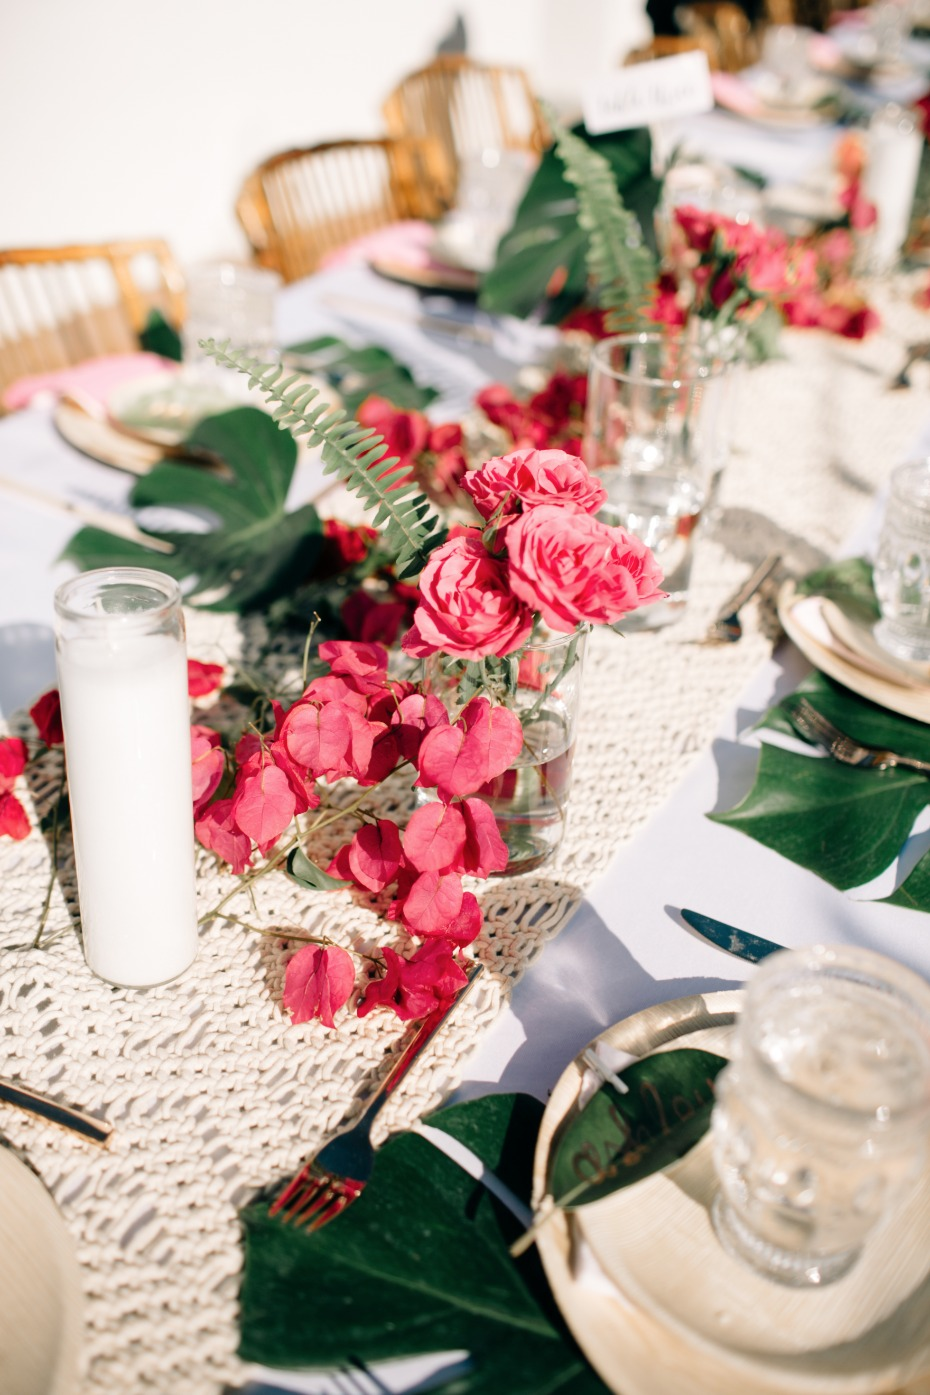 simple table arrangements of red roses, bougainvillea and ferns placed in small vases